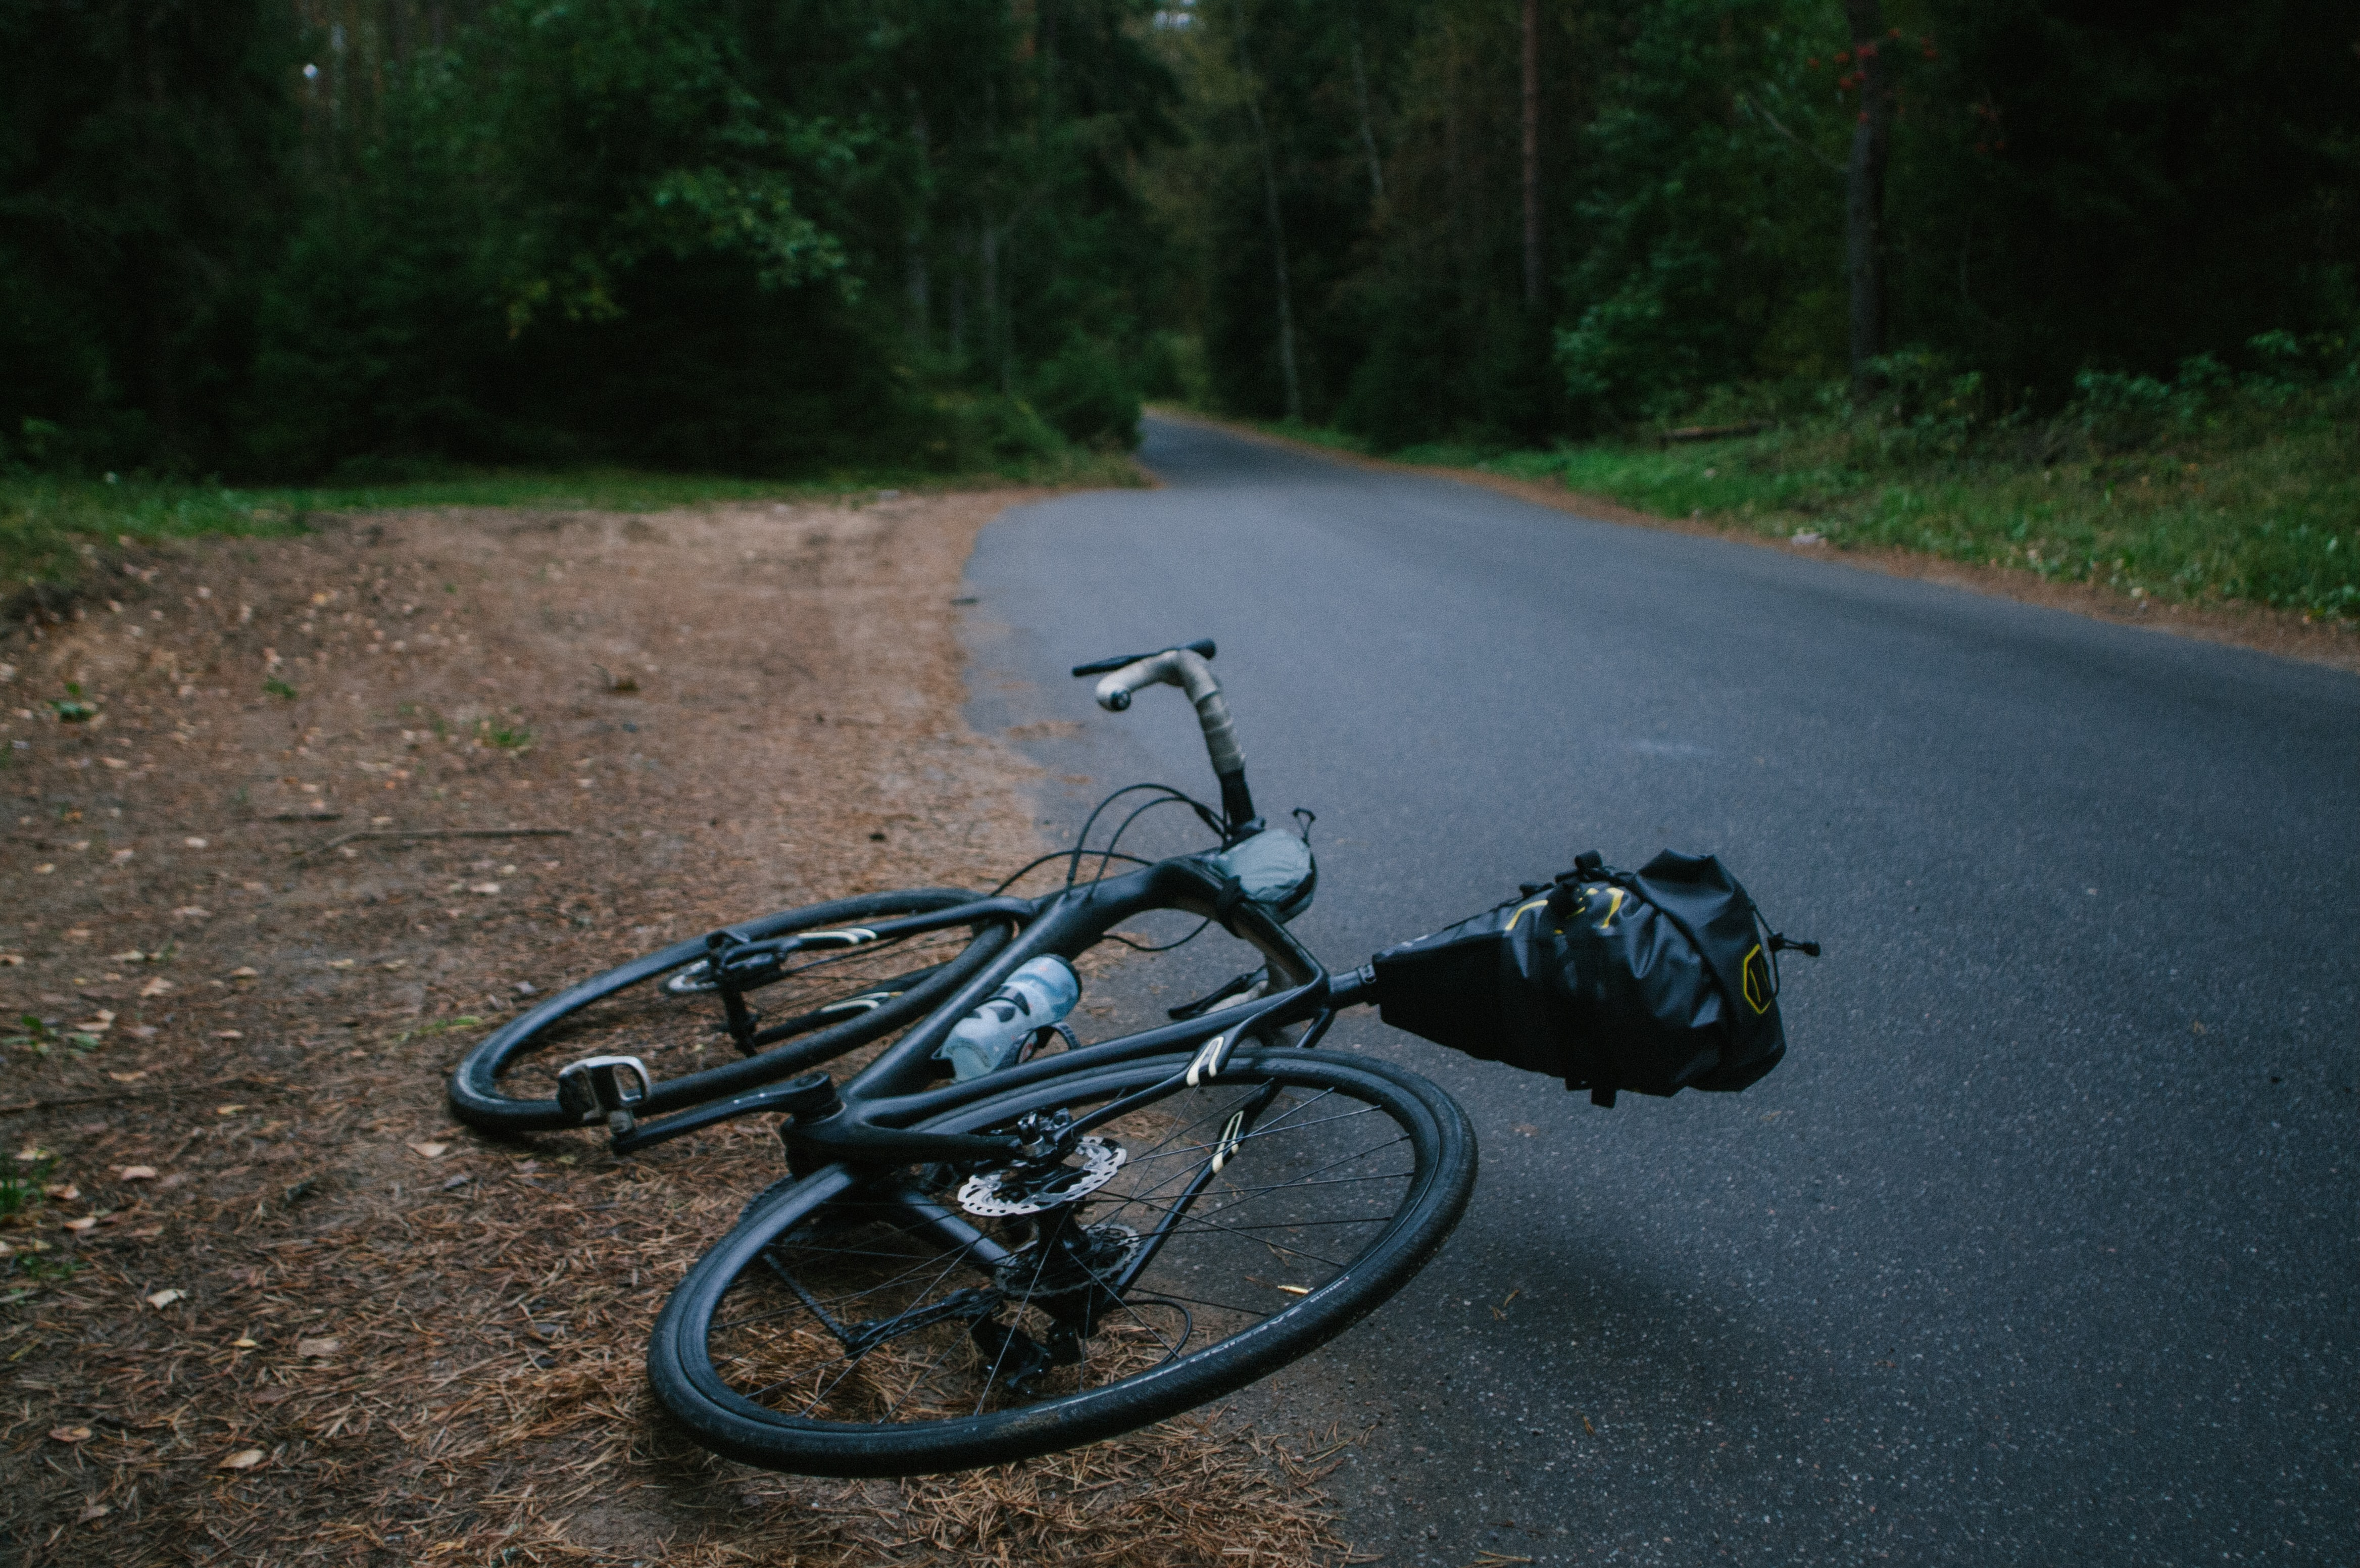 black road bike lying on asphalt road during daytime